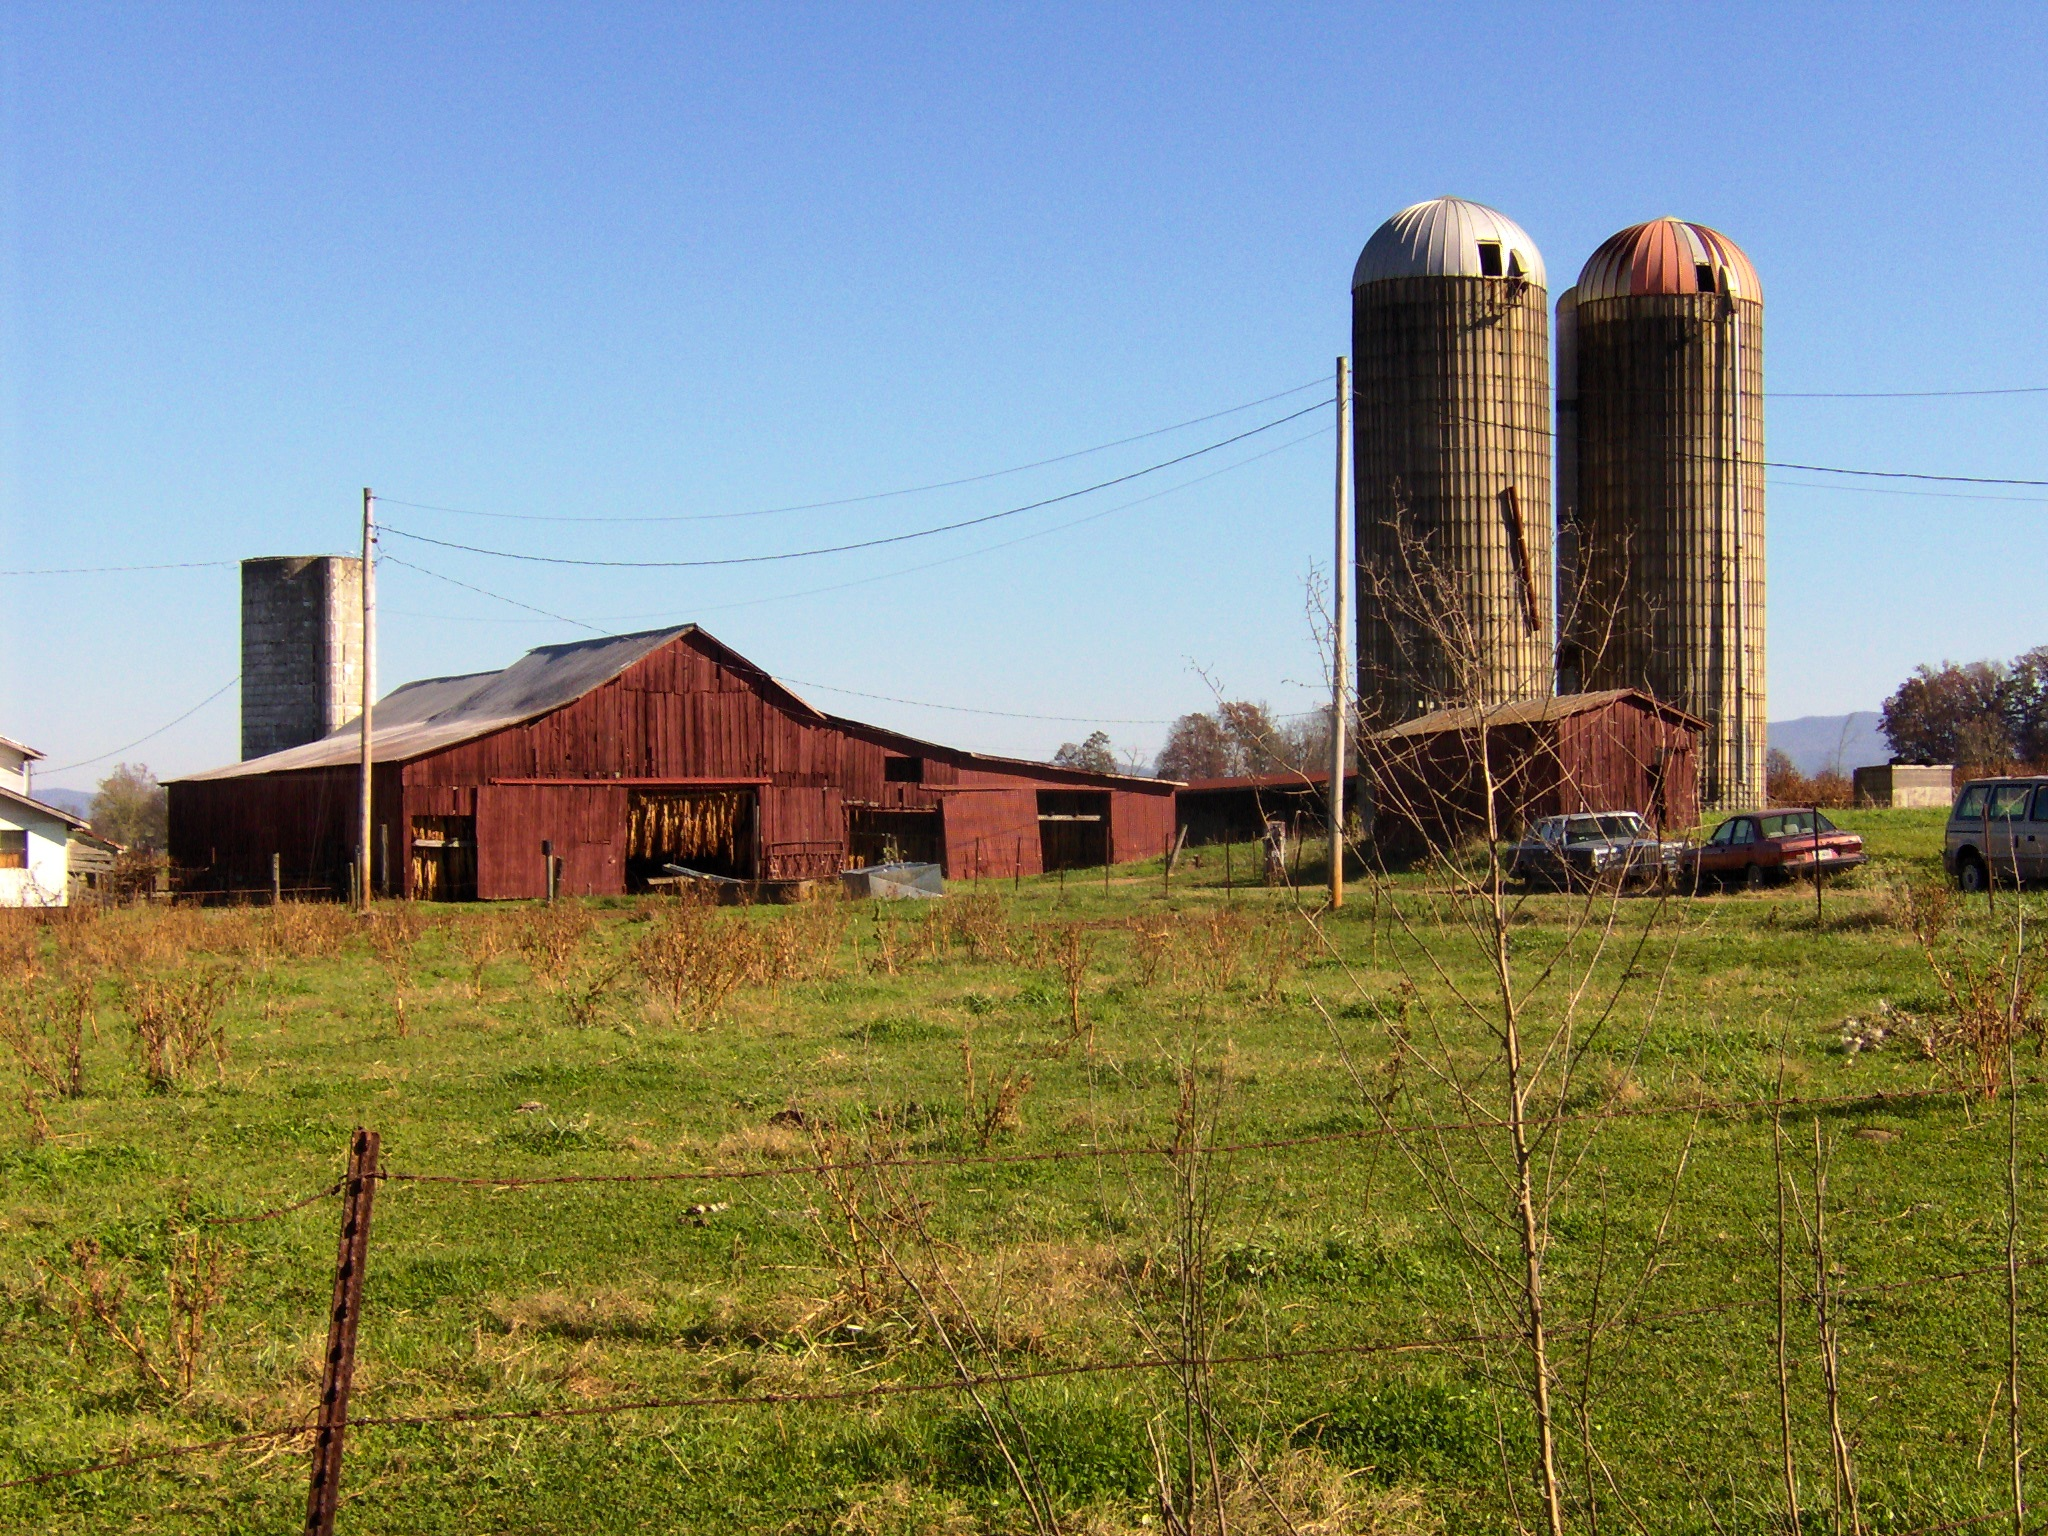 File:Earnest-broyles-farm-tn1.jpg